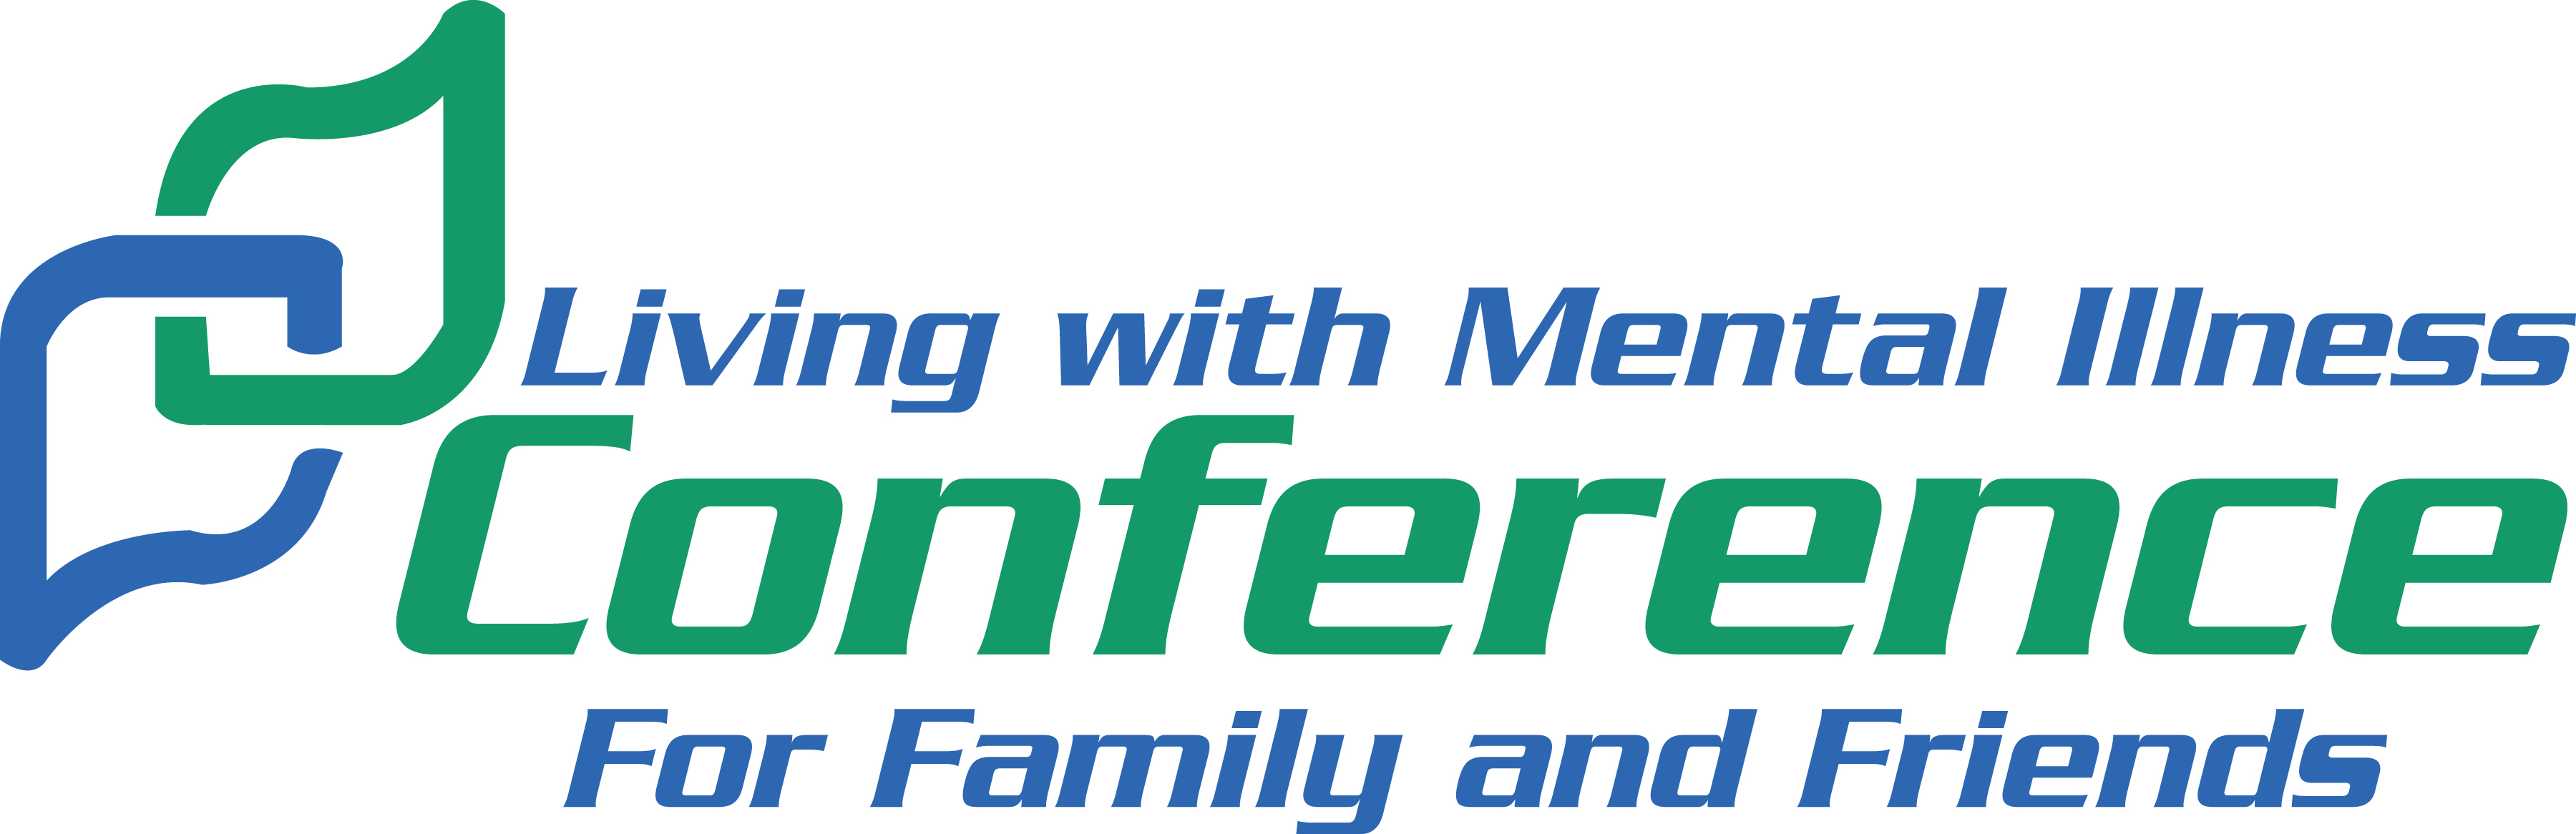 Living with Mental Illness Conference Logo